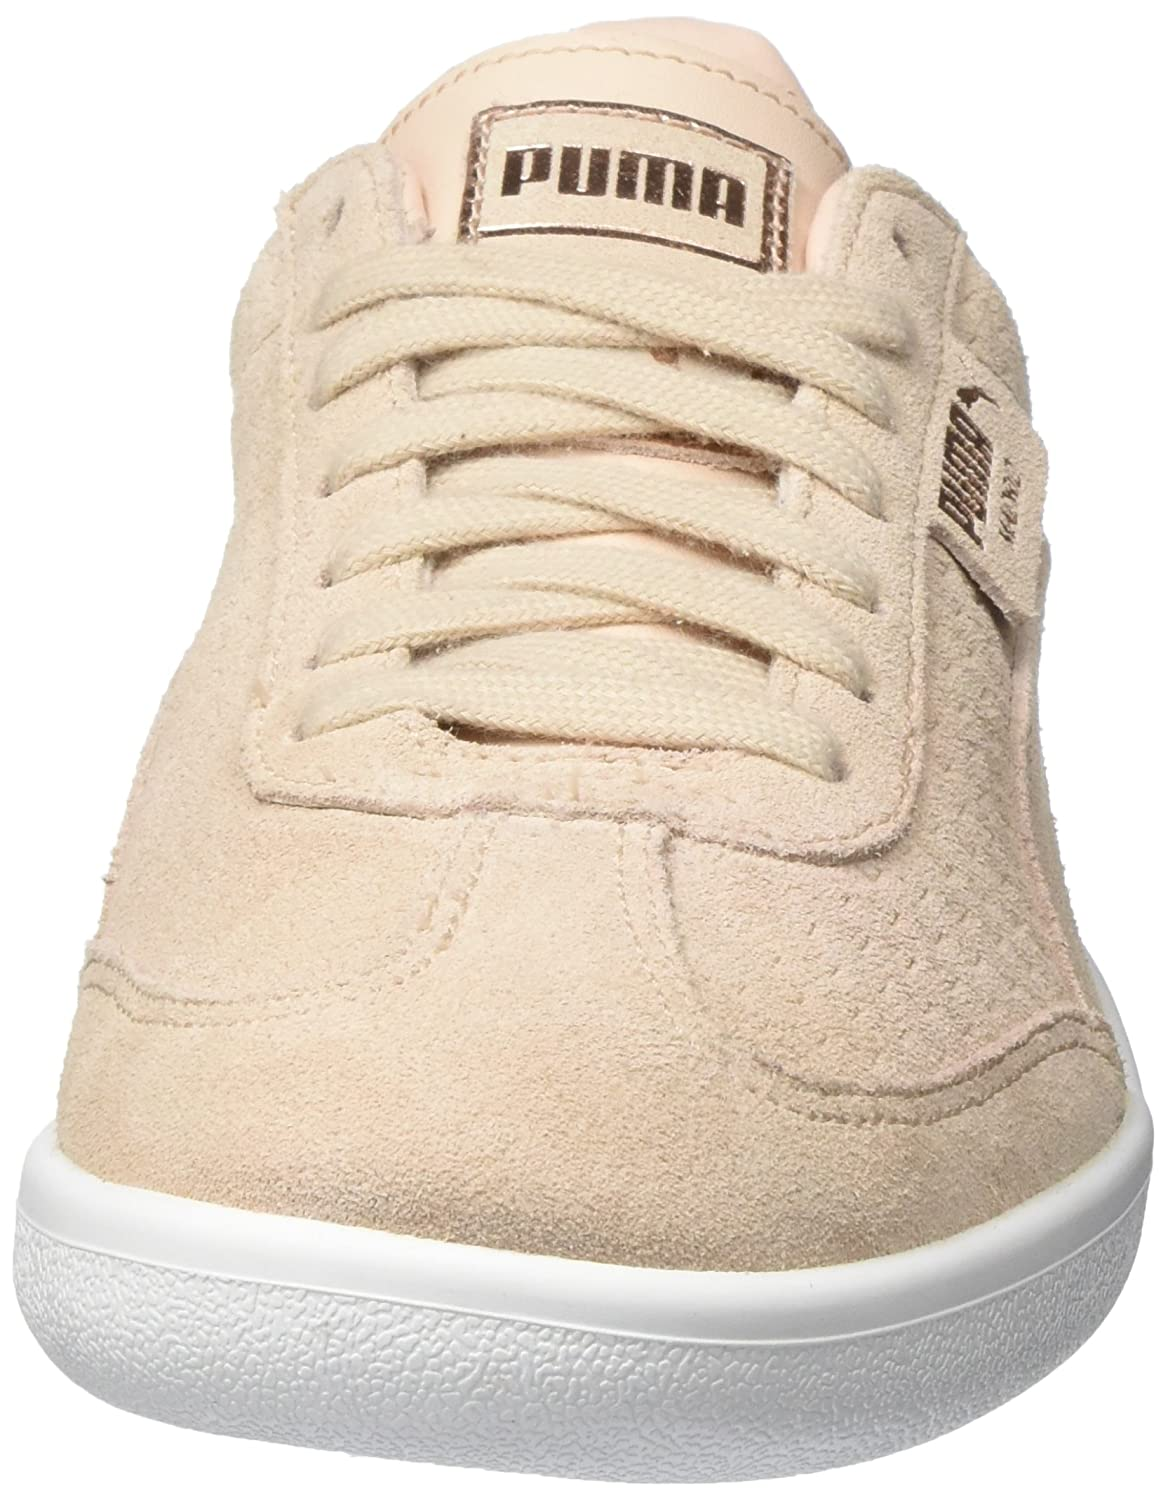 05463c2313c4 Puma Women s Madrid Perf Suede WN s Trainers  Amazon.co.uk  Shoes   Bags